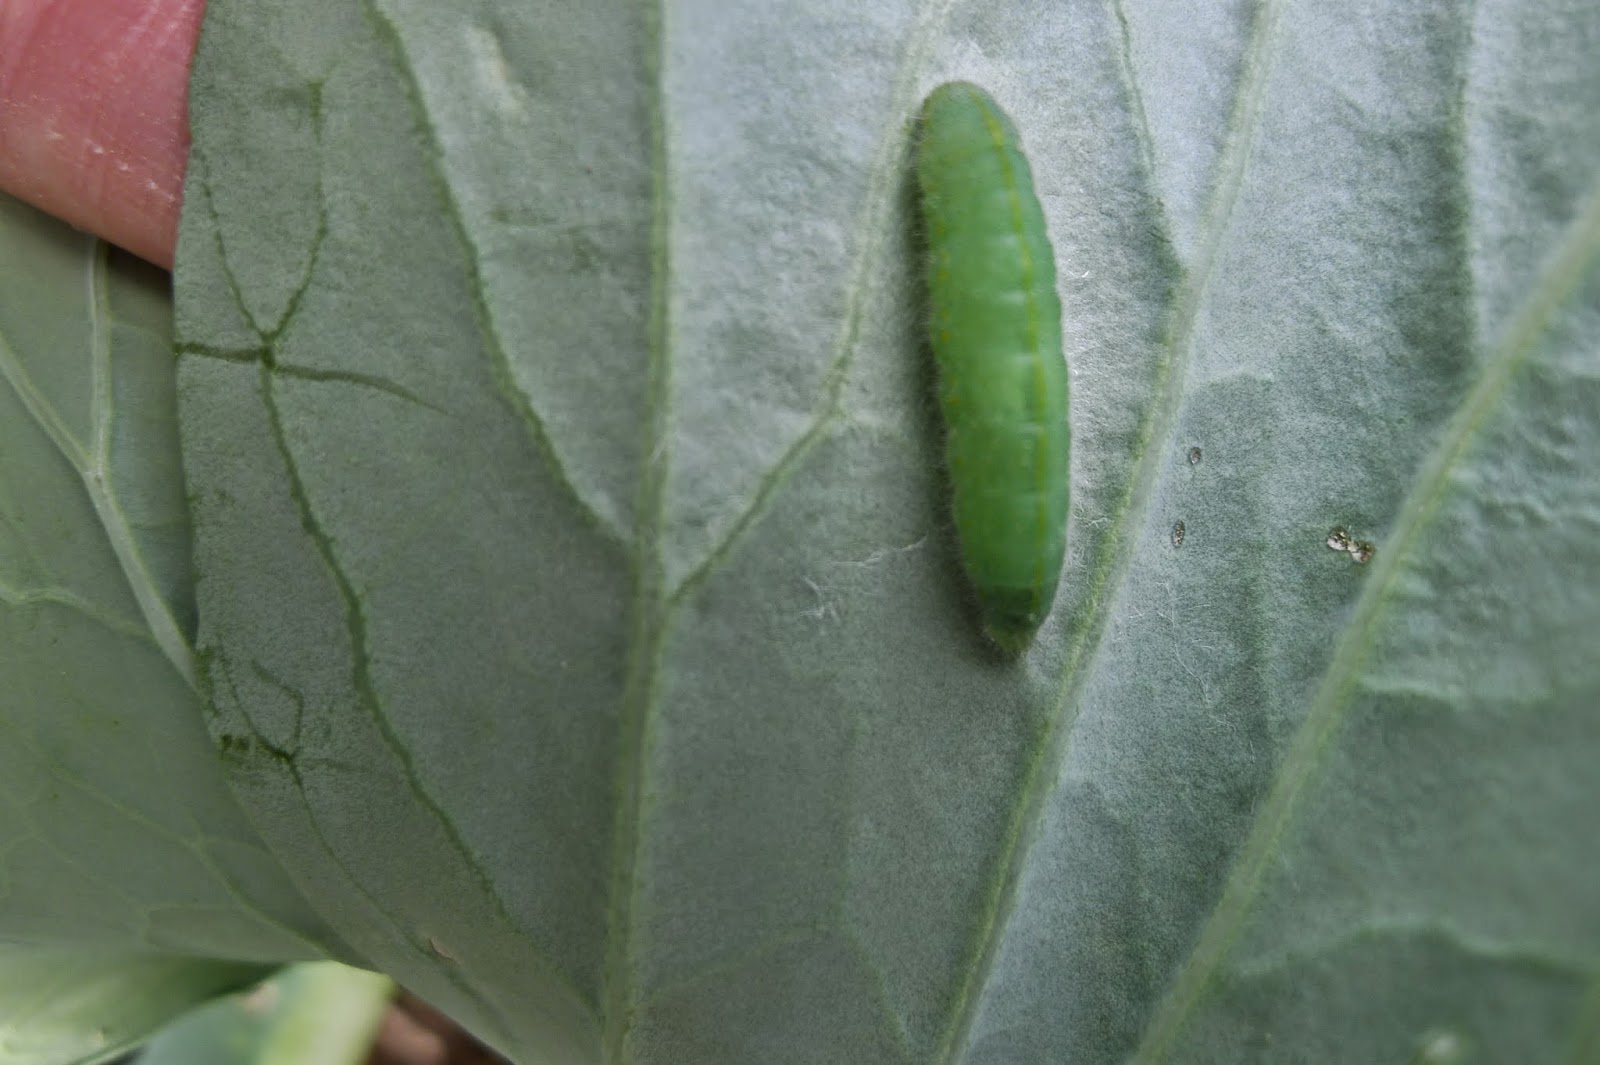 cabbage worm, organic pest control, urban farming